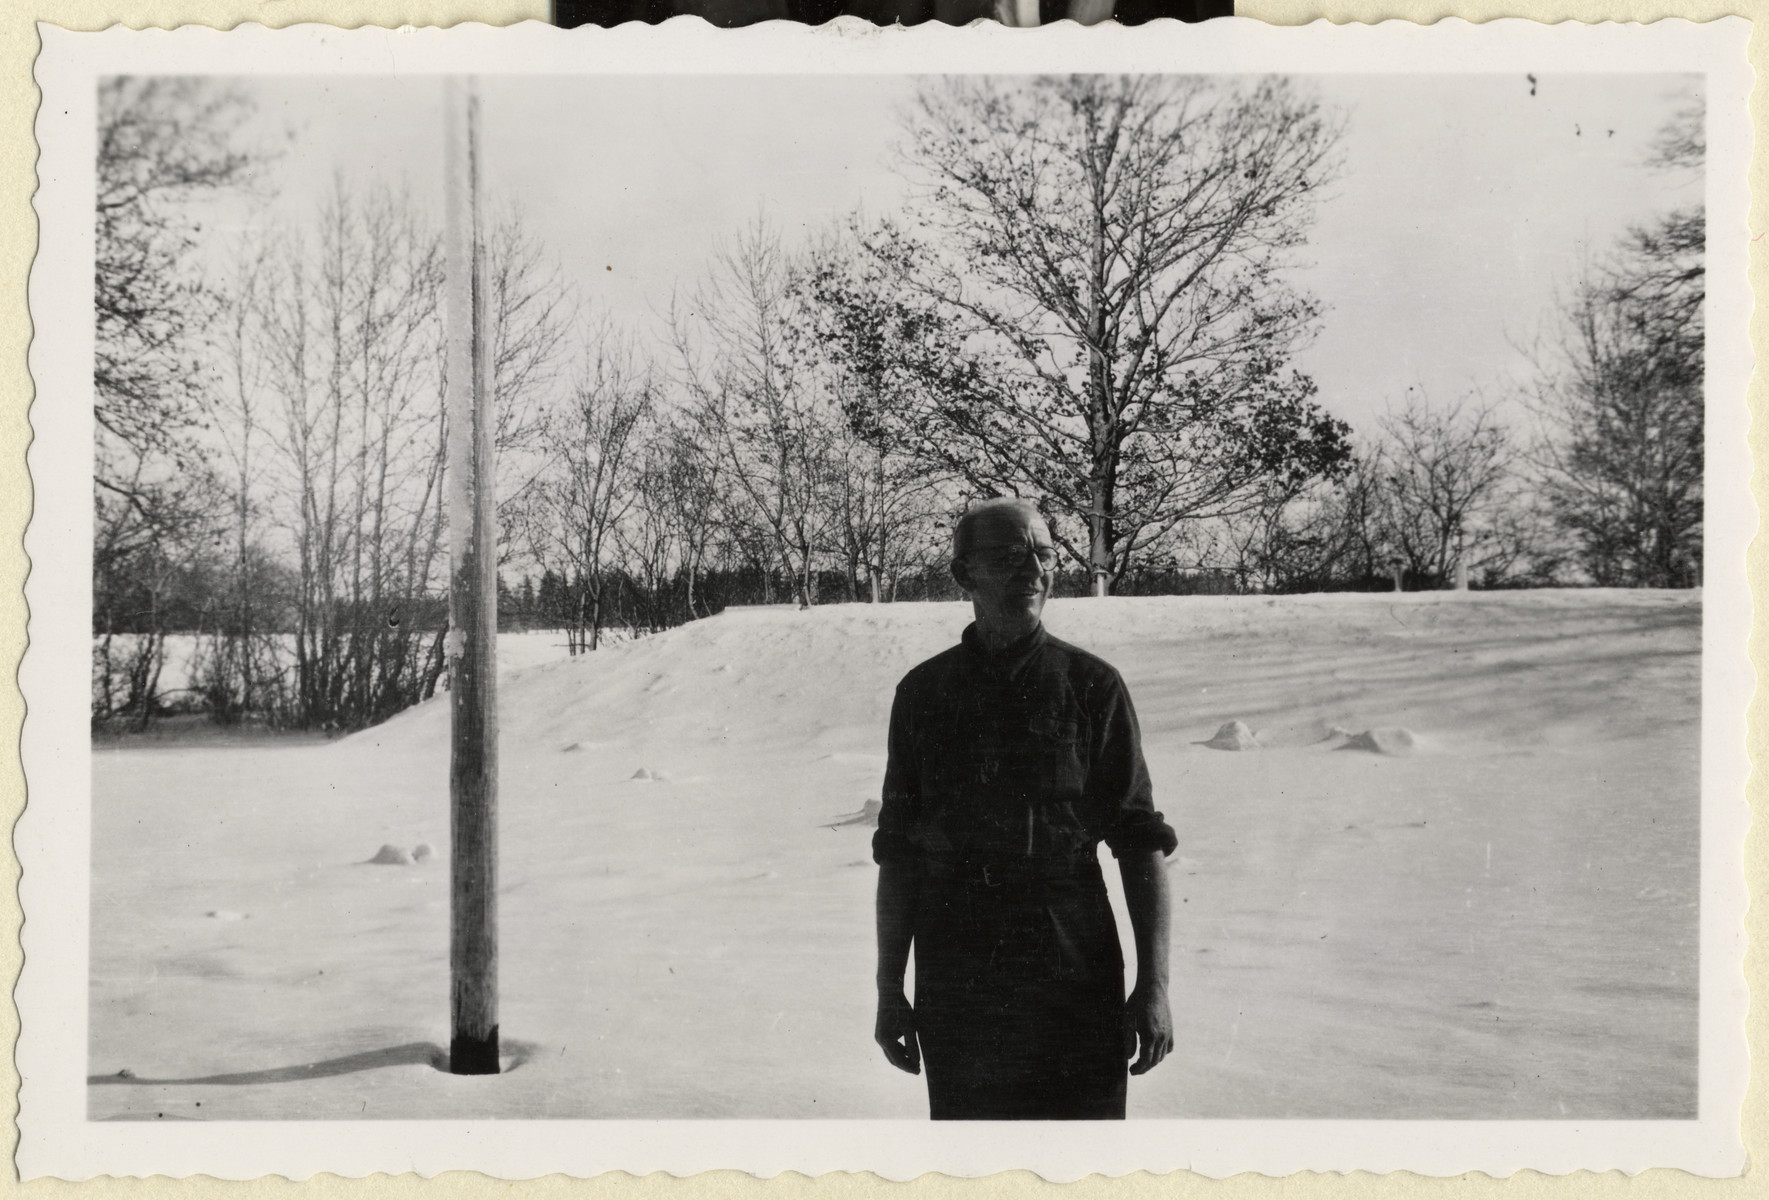 Karel Kasak, a Czech political prisoner in Dachau, stands outside in the snow outside the grounds of the camp.